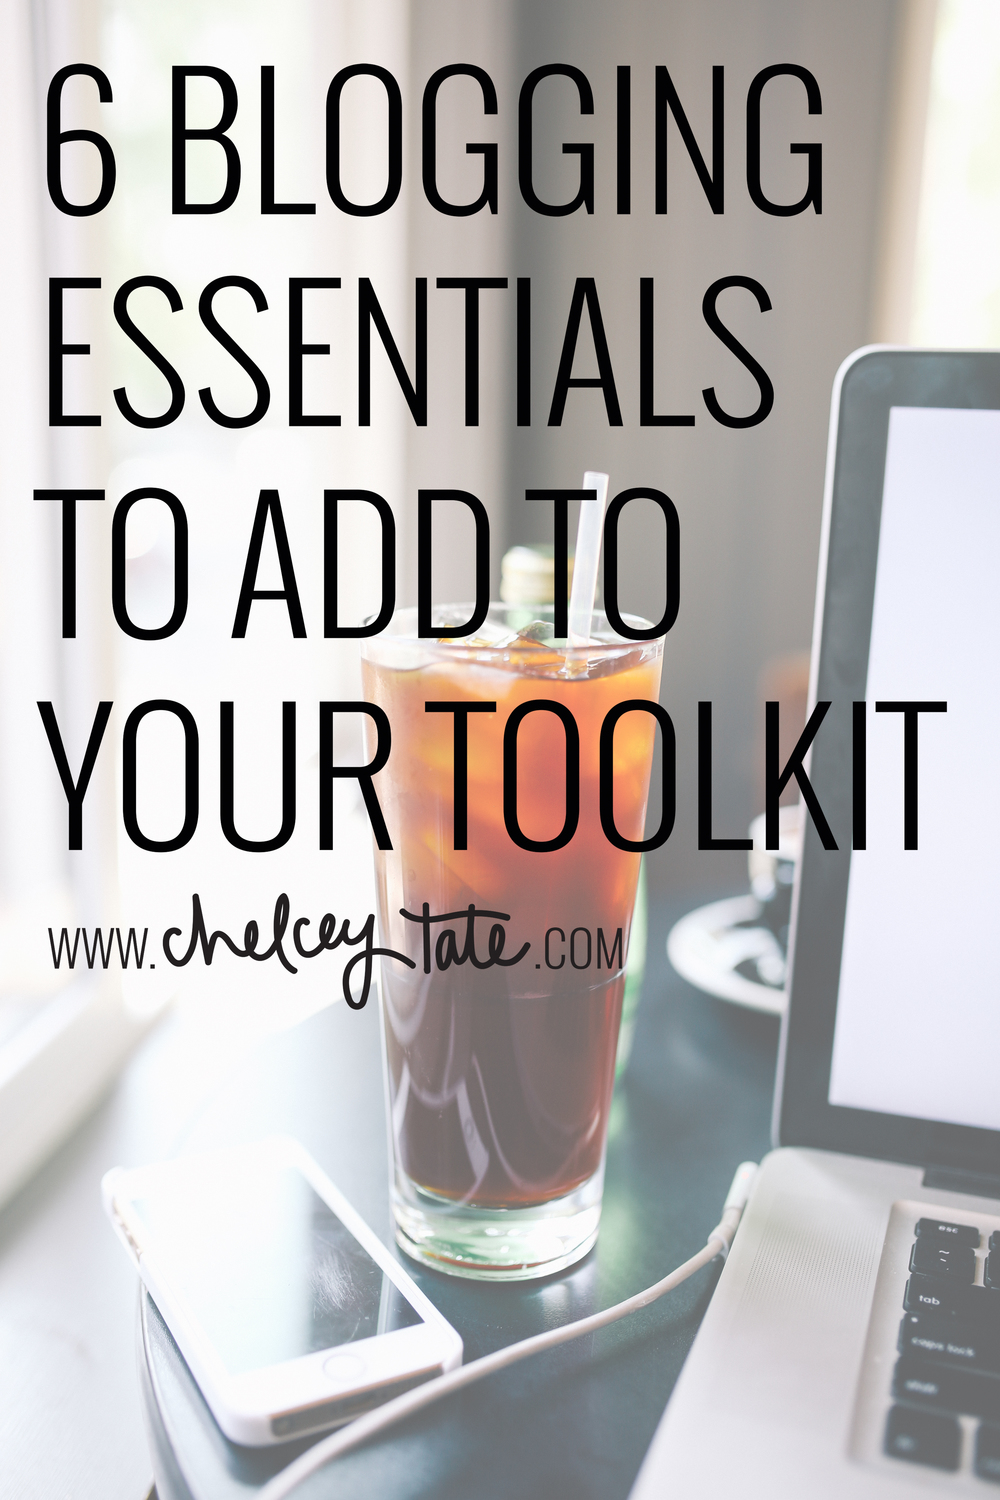 6 Blogging Essentials to Add to Your Toolkit from chelceytate.com